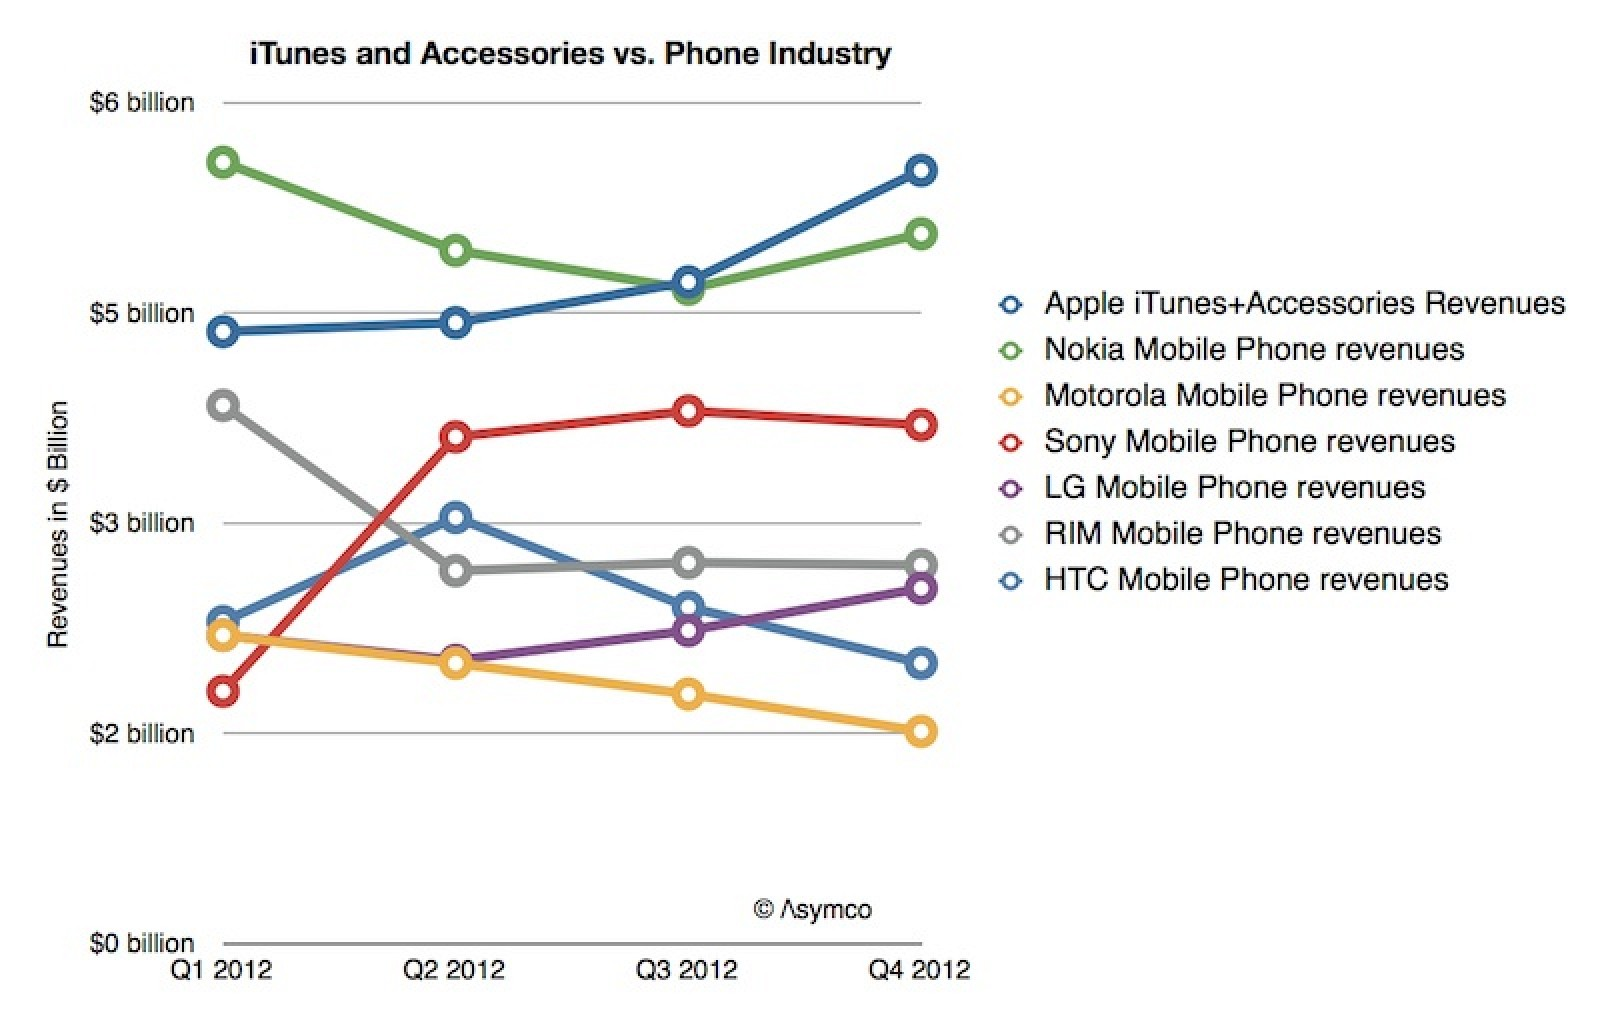 Apple Makes More From iTunes and Accessories Than Most